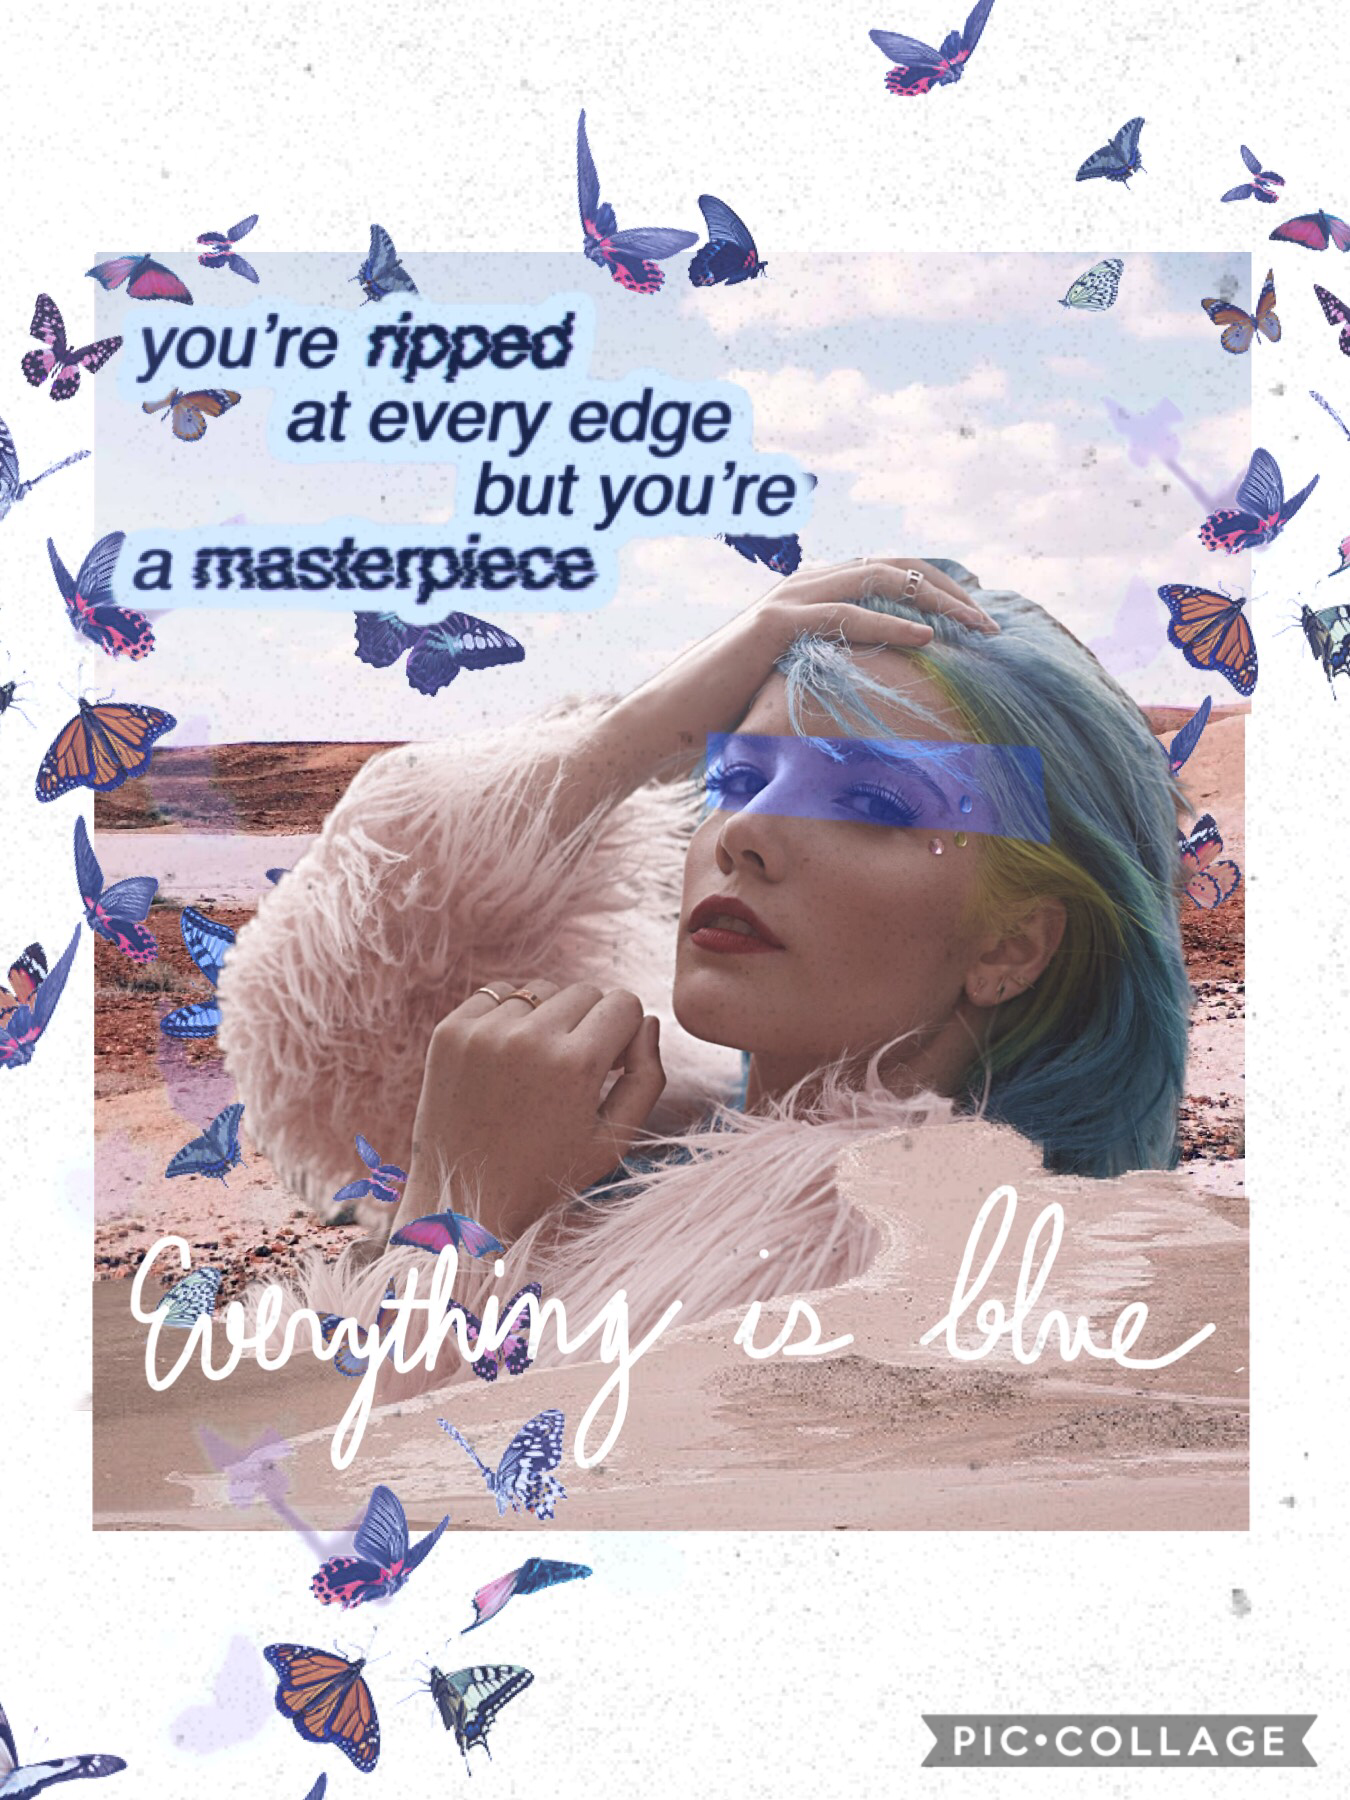 Idk but I did a Halsey collage🌊🦋🌬☁️